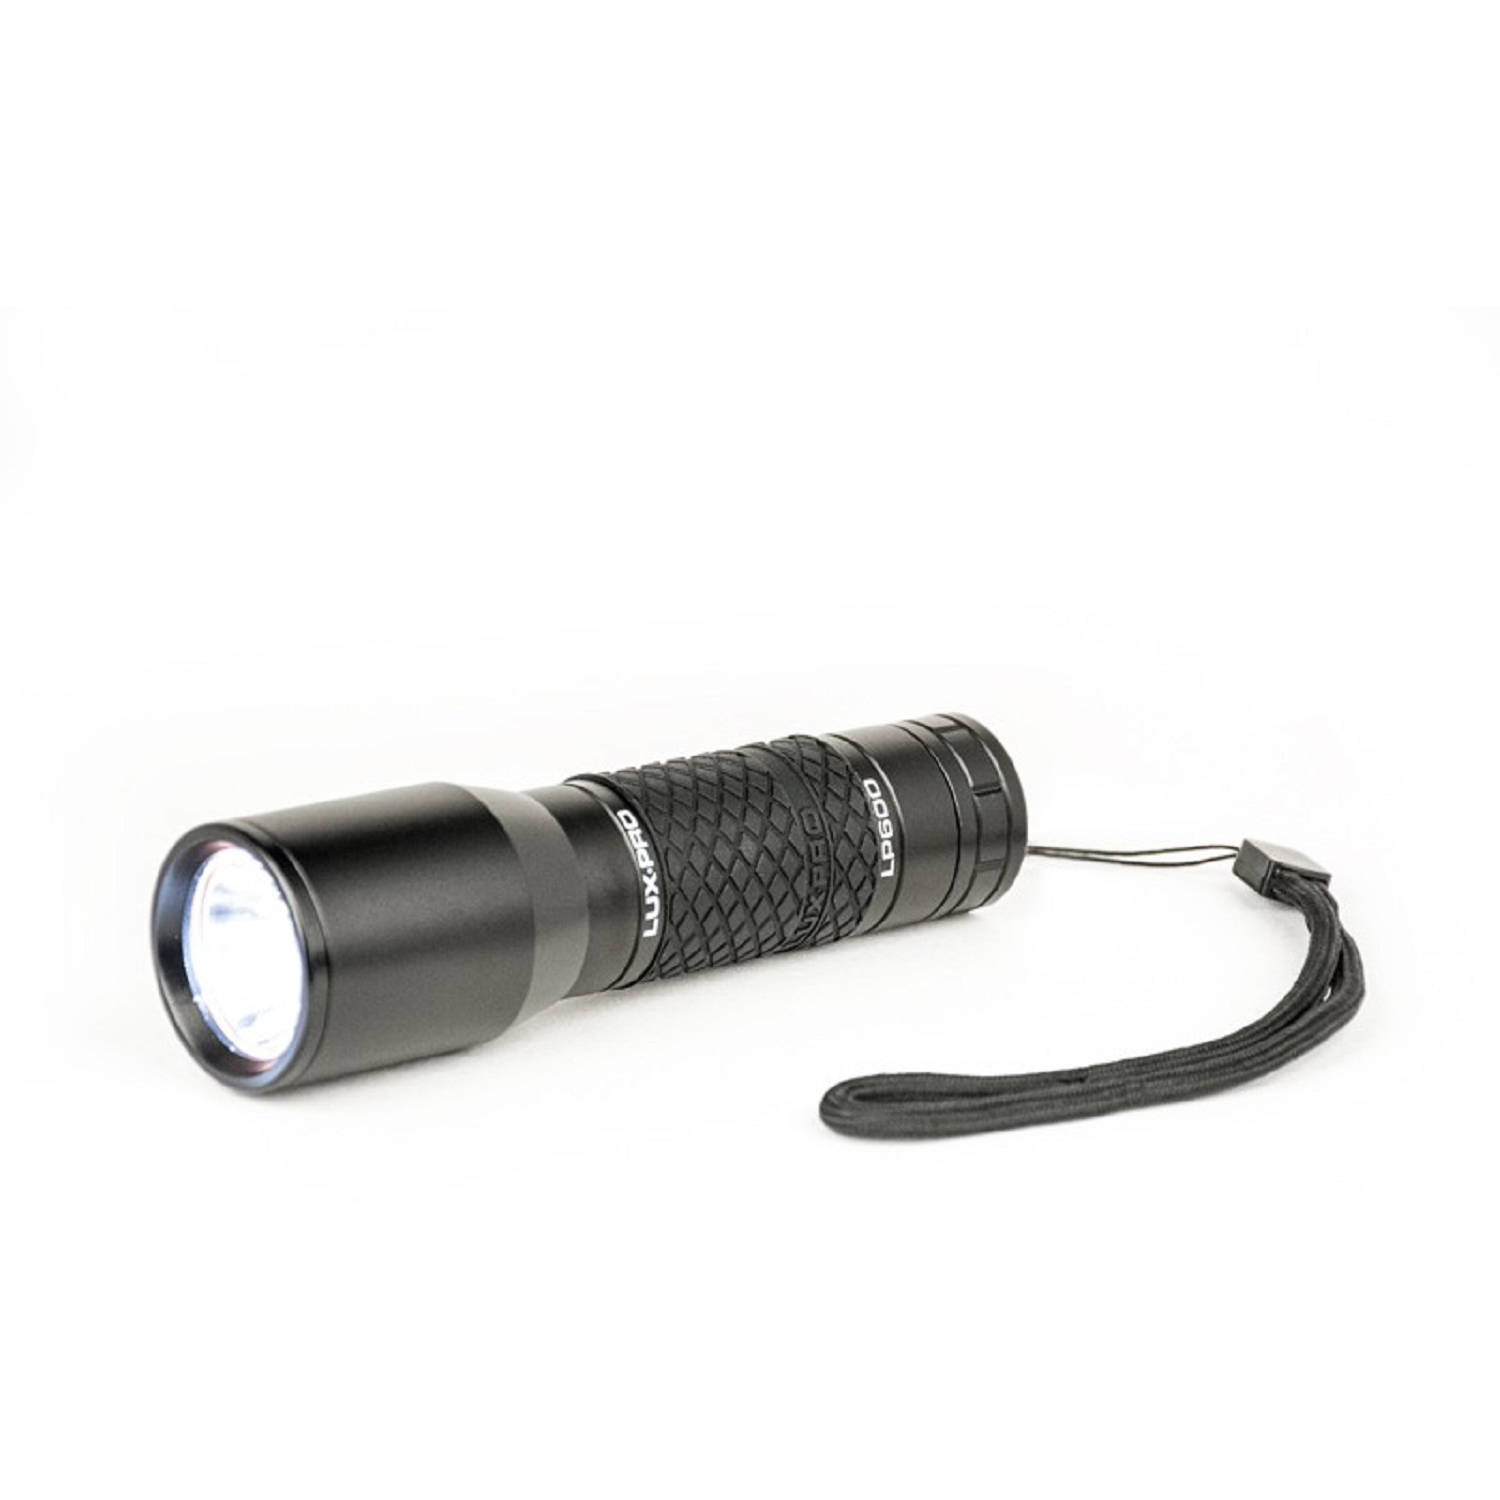 LUXPRO LP 600C Extreme Tac 600 Flashlight, 320 Lumens by LUXPRO